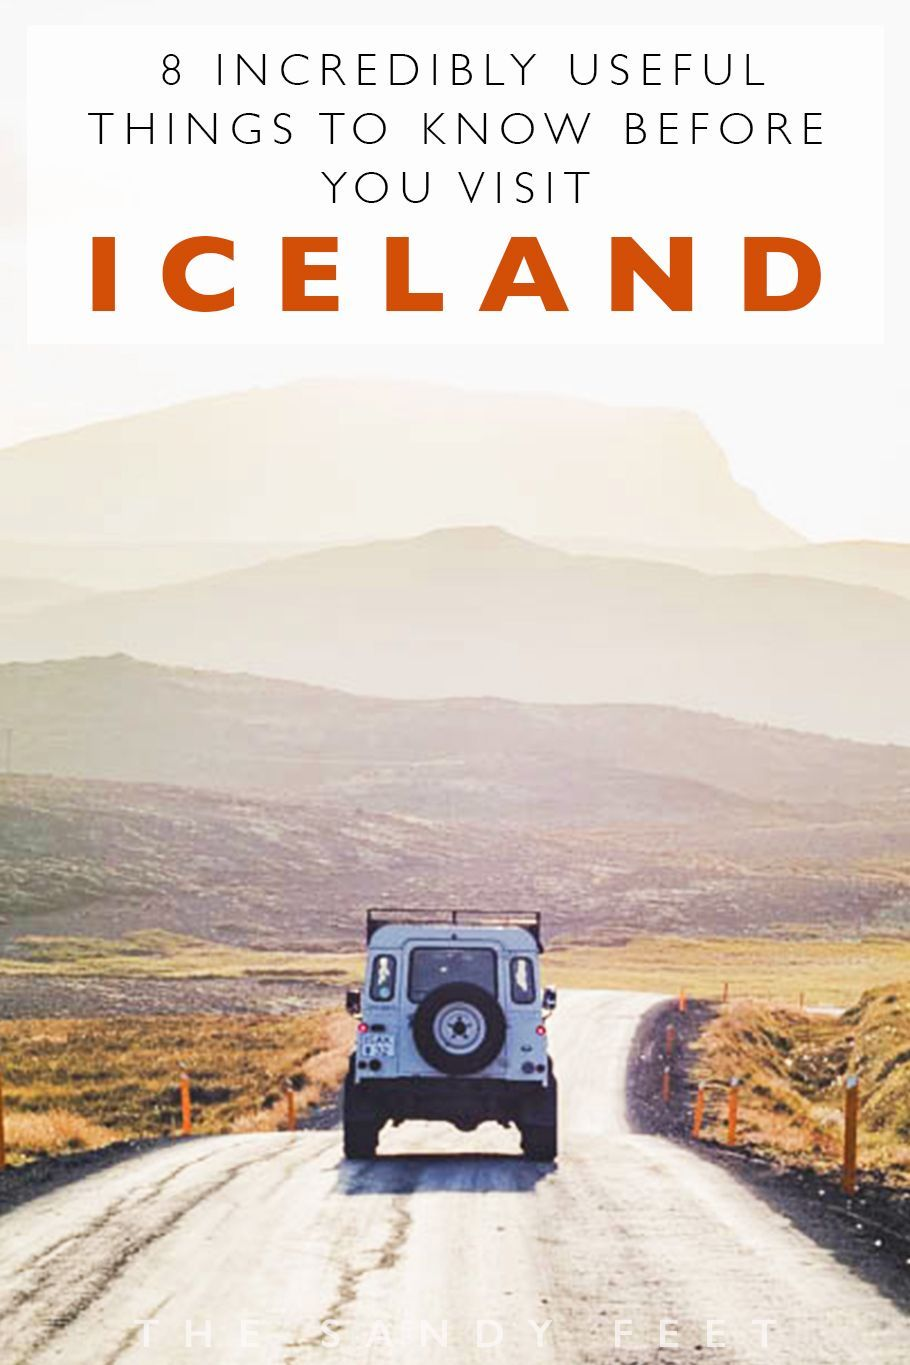 Travel Tips: 8 Really Useful Things To Know Before You Visit Iceland Top Iceland Travel Tips: 8 Incredibly Useful Things To Know Before You Visit IcelandTop Iceland Travel Tips: 8 Incredibly Useful Things To Know Before You Visit Iceland